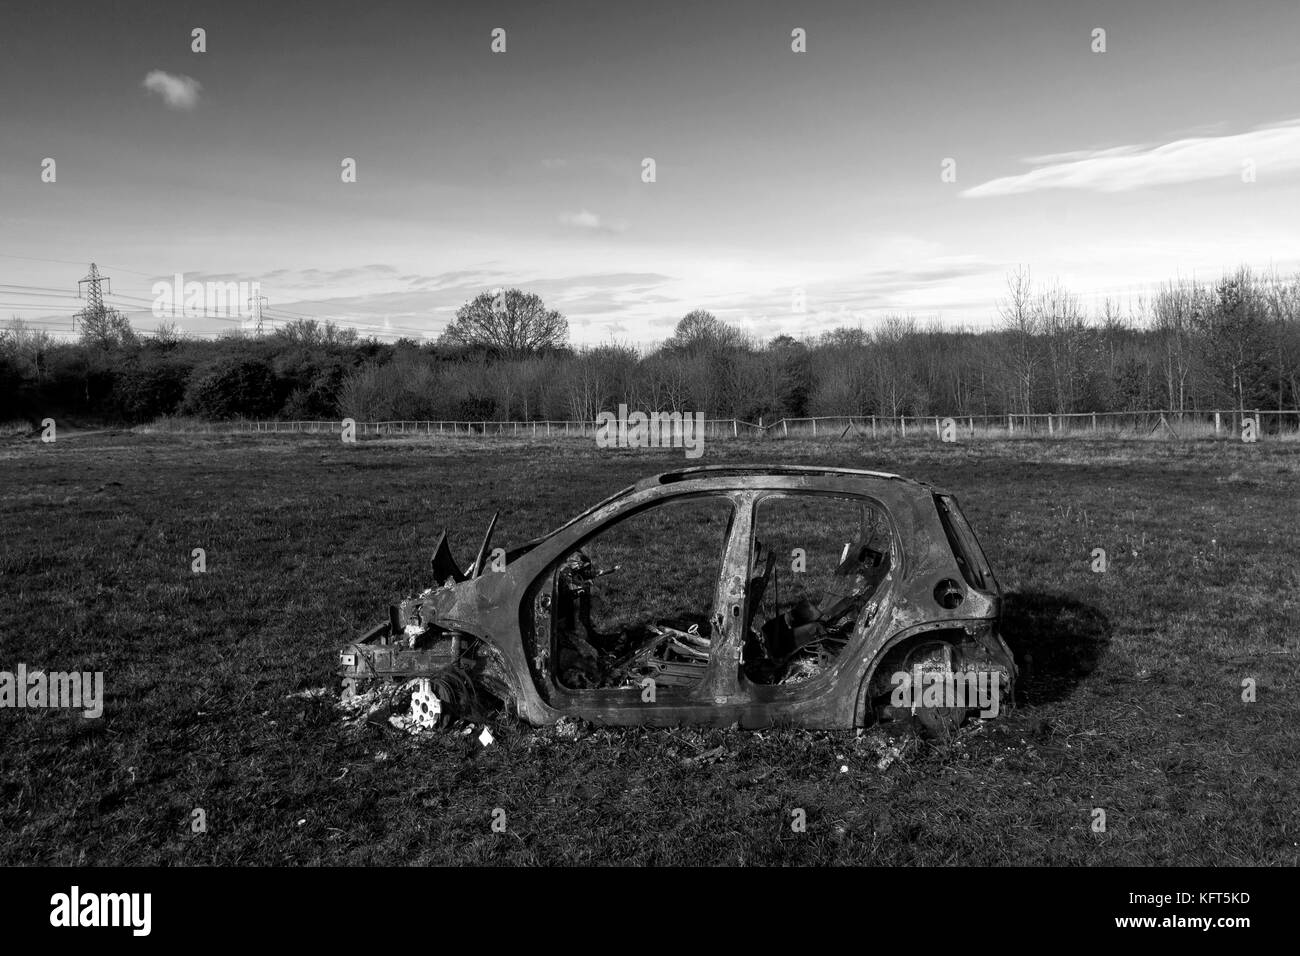 car crime - a stolen & burned out car left in a field. - Stock Image